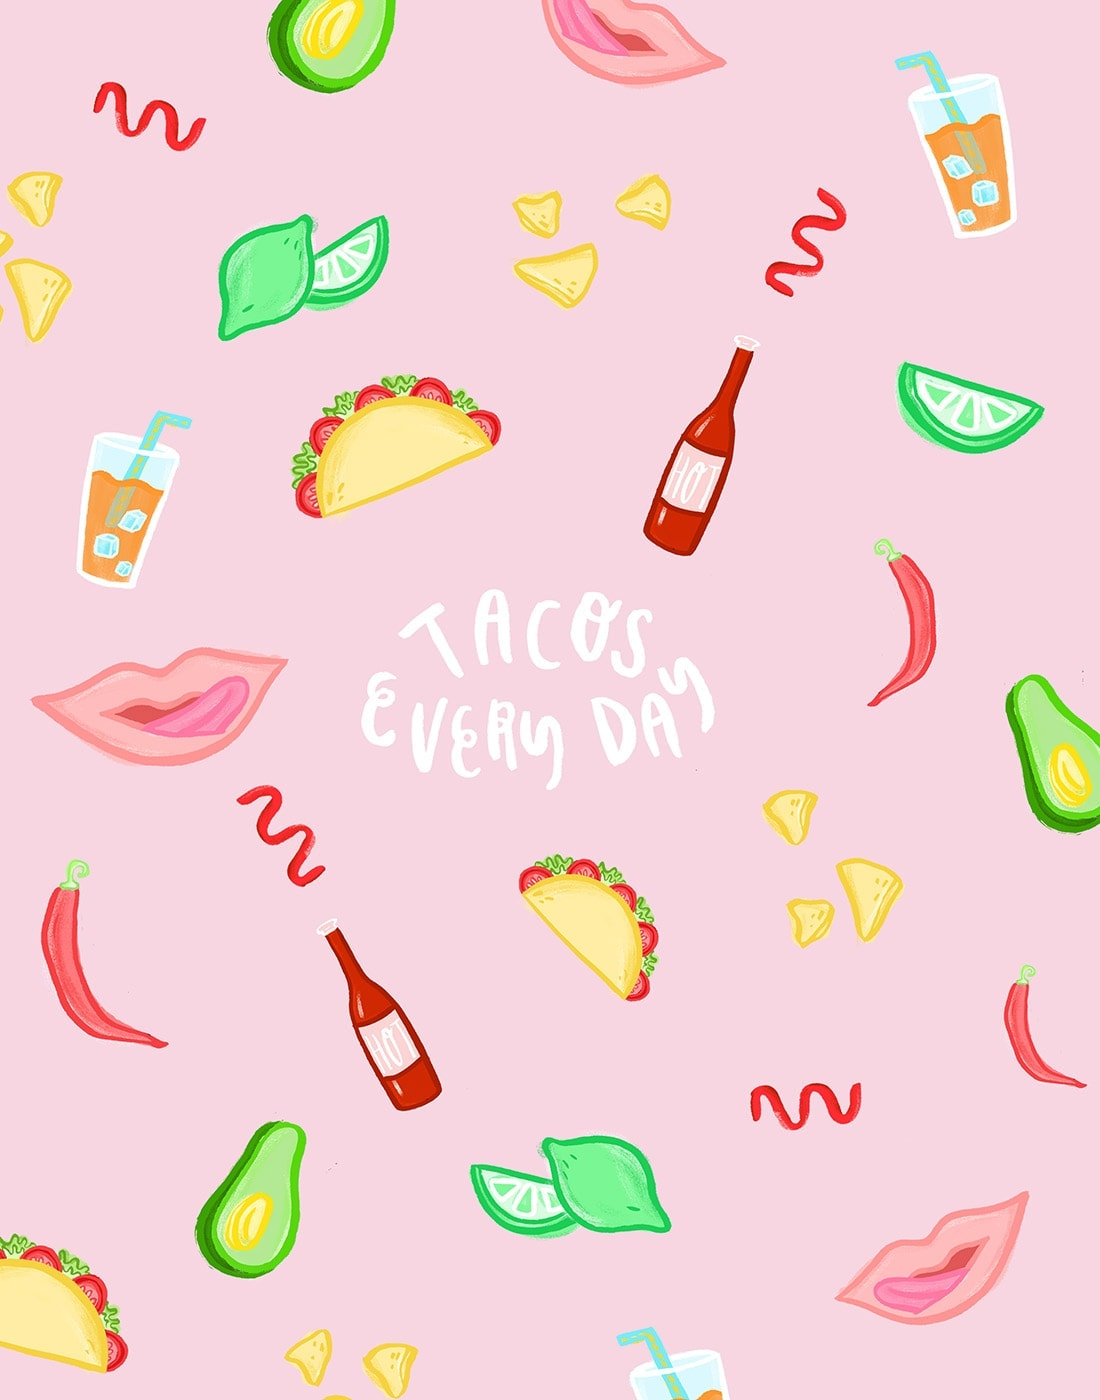 Tacos Every Day